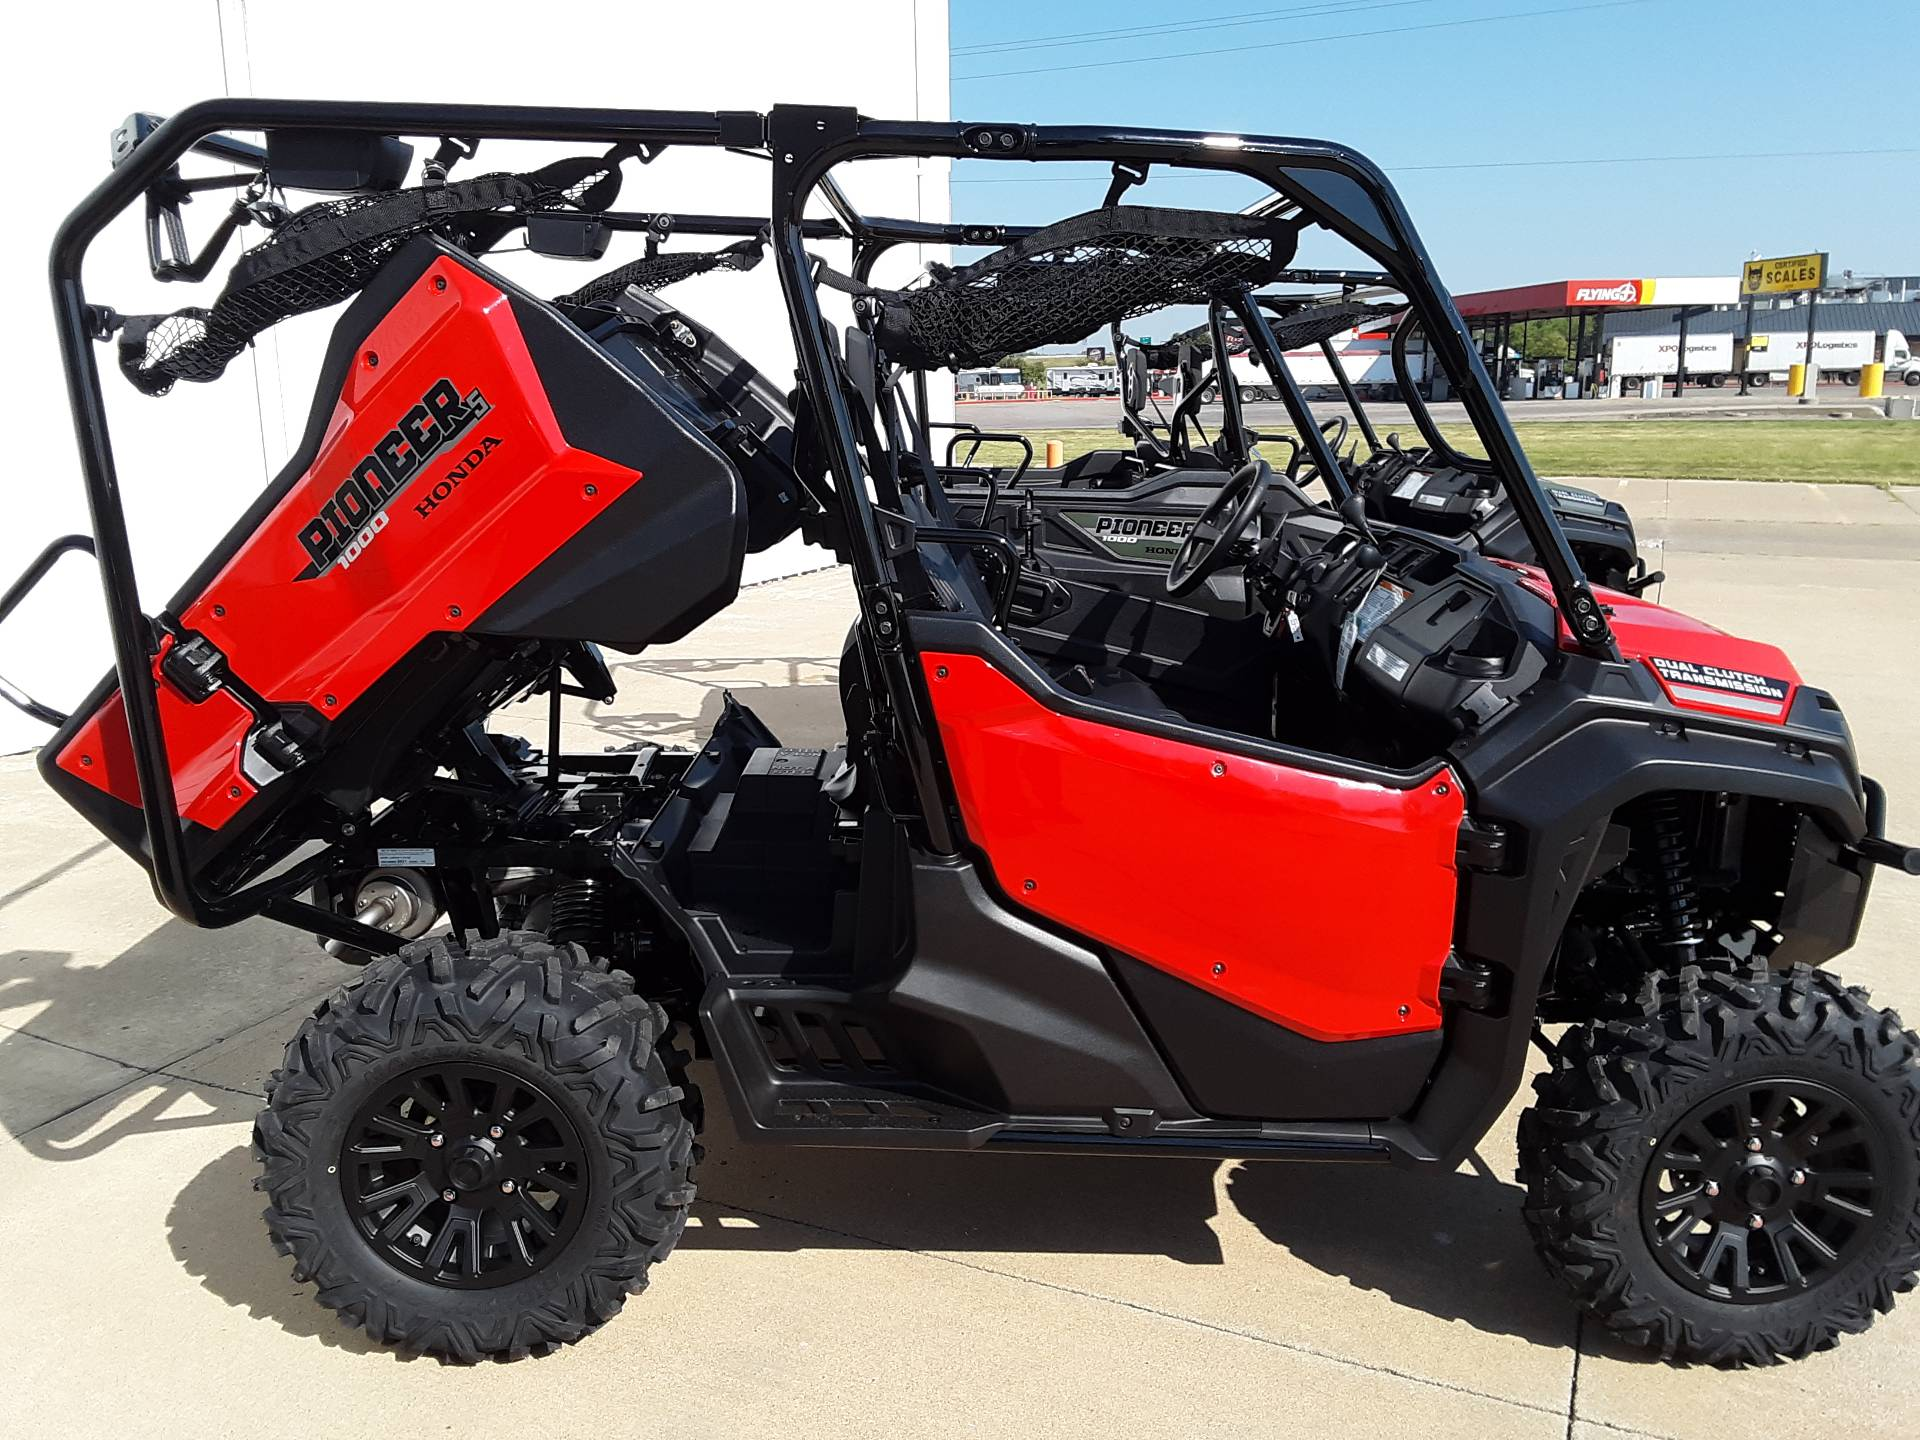 2021 Honda PIONEER 1000 - 5 DELUXE in Salina, Kansas - Photo 3